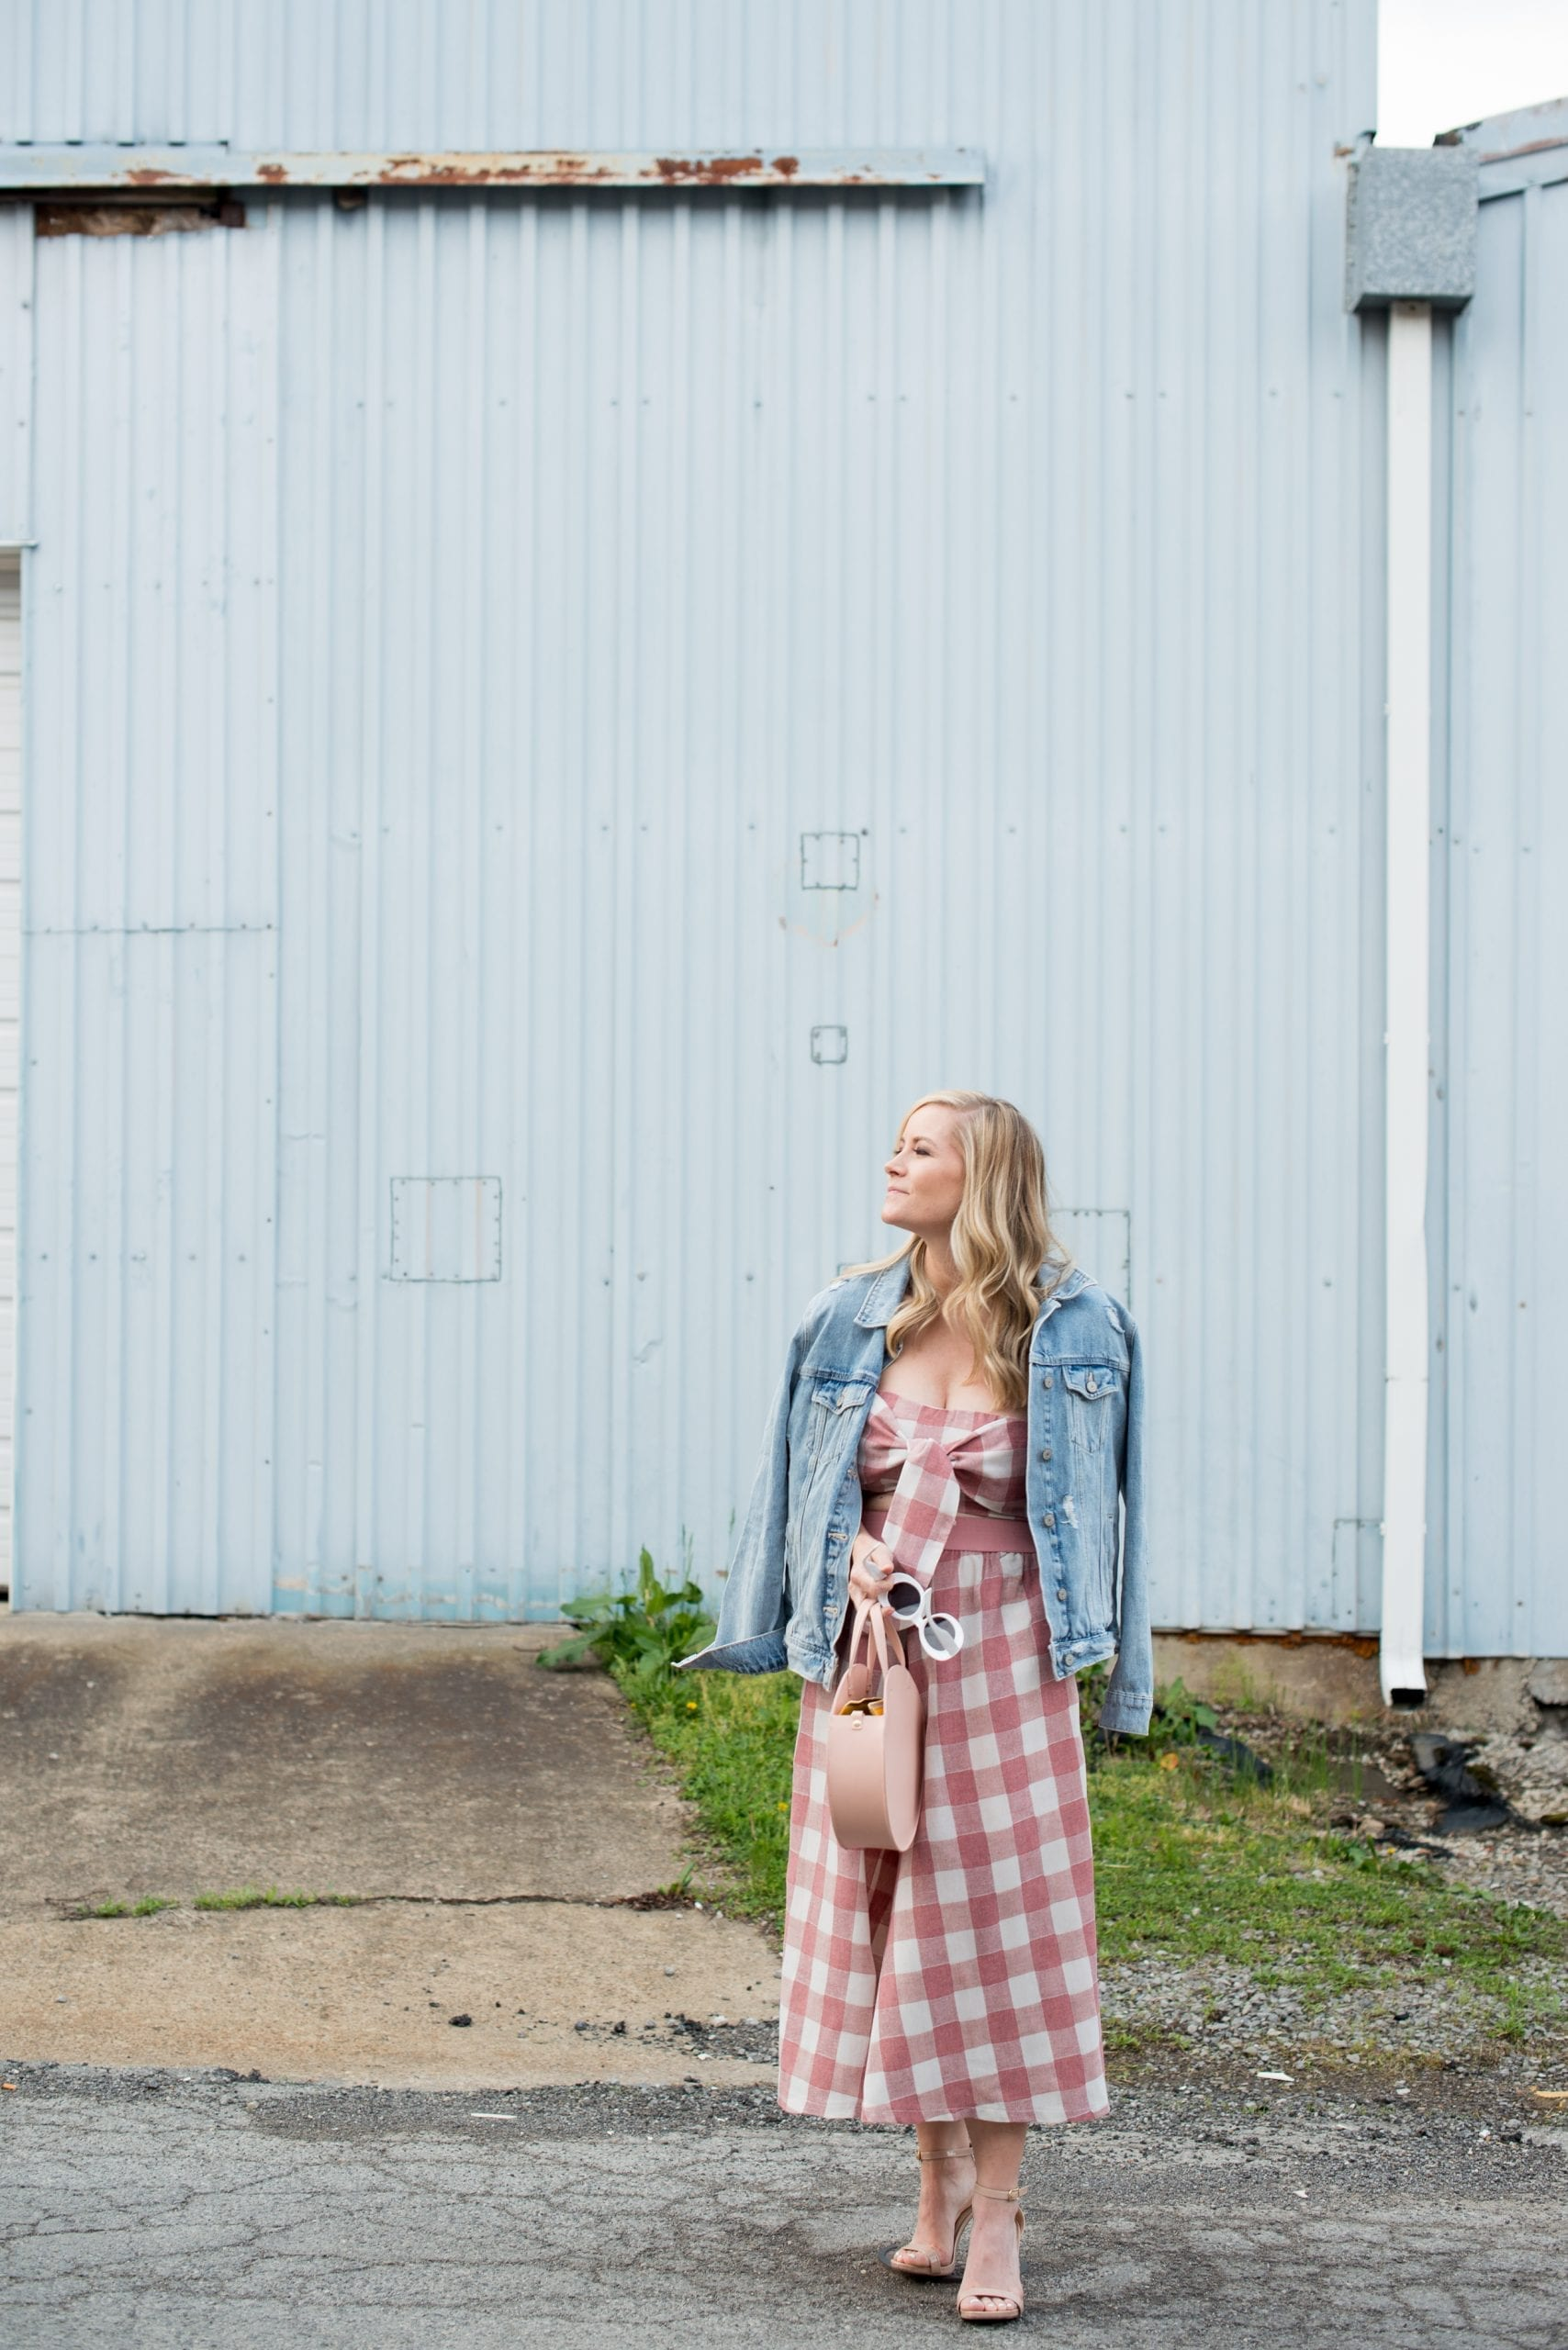 The Perfect Pair: Getting Matchy Matchy with this Gingham Matching Set